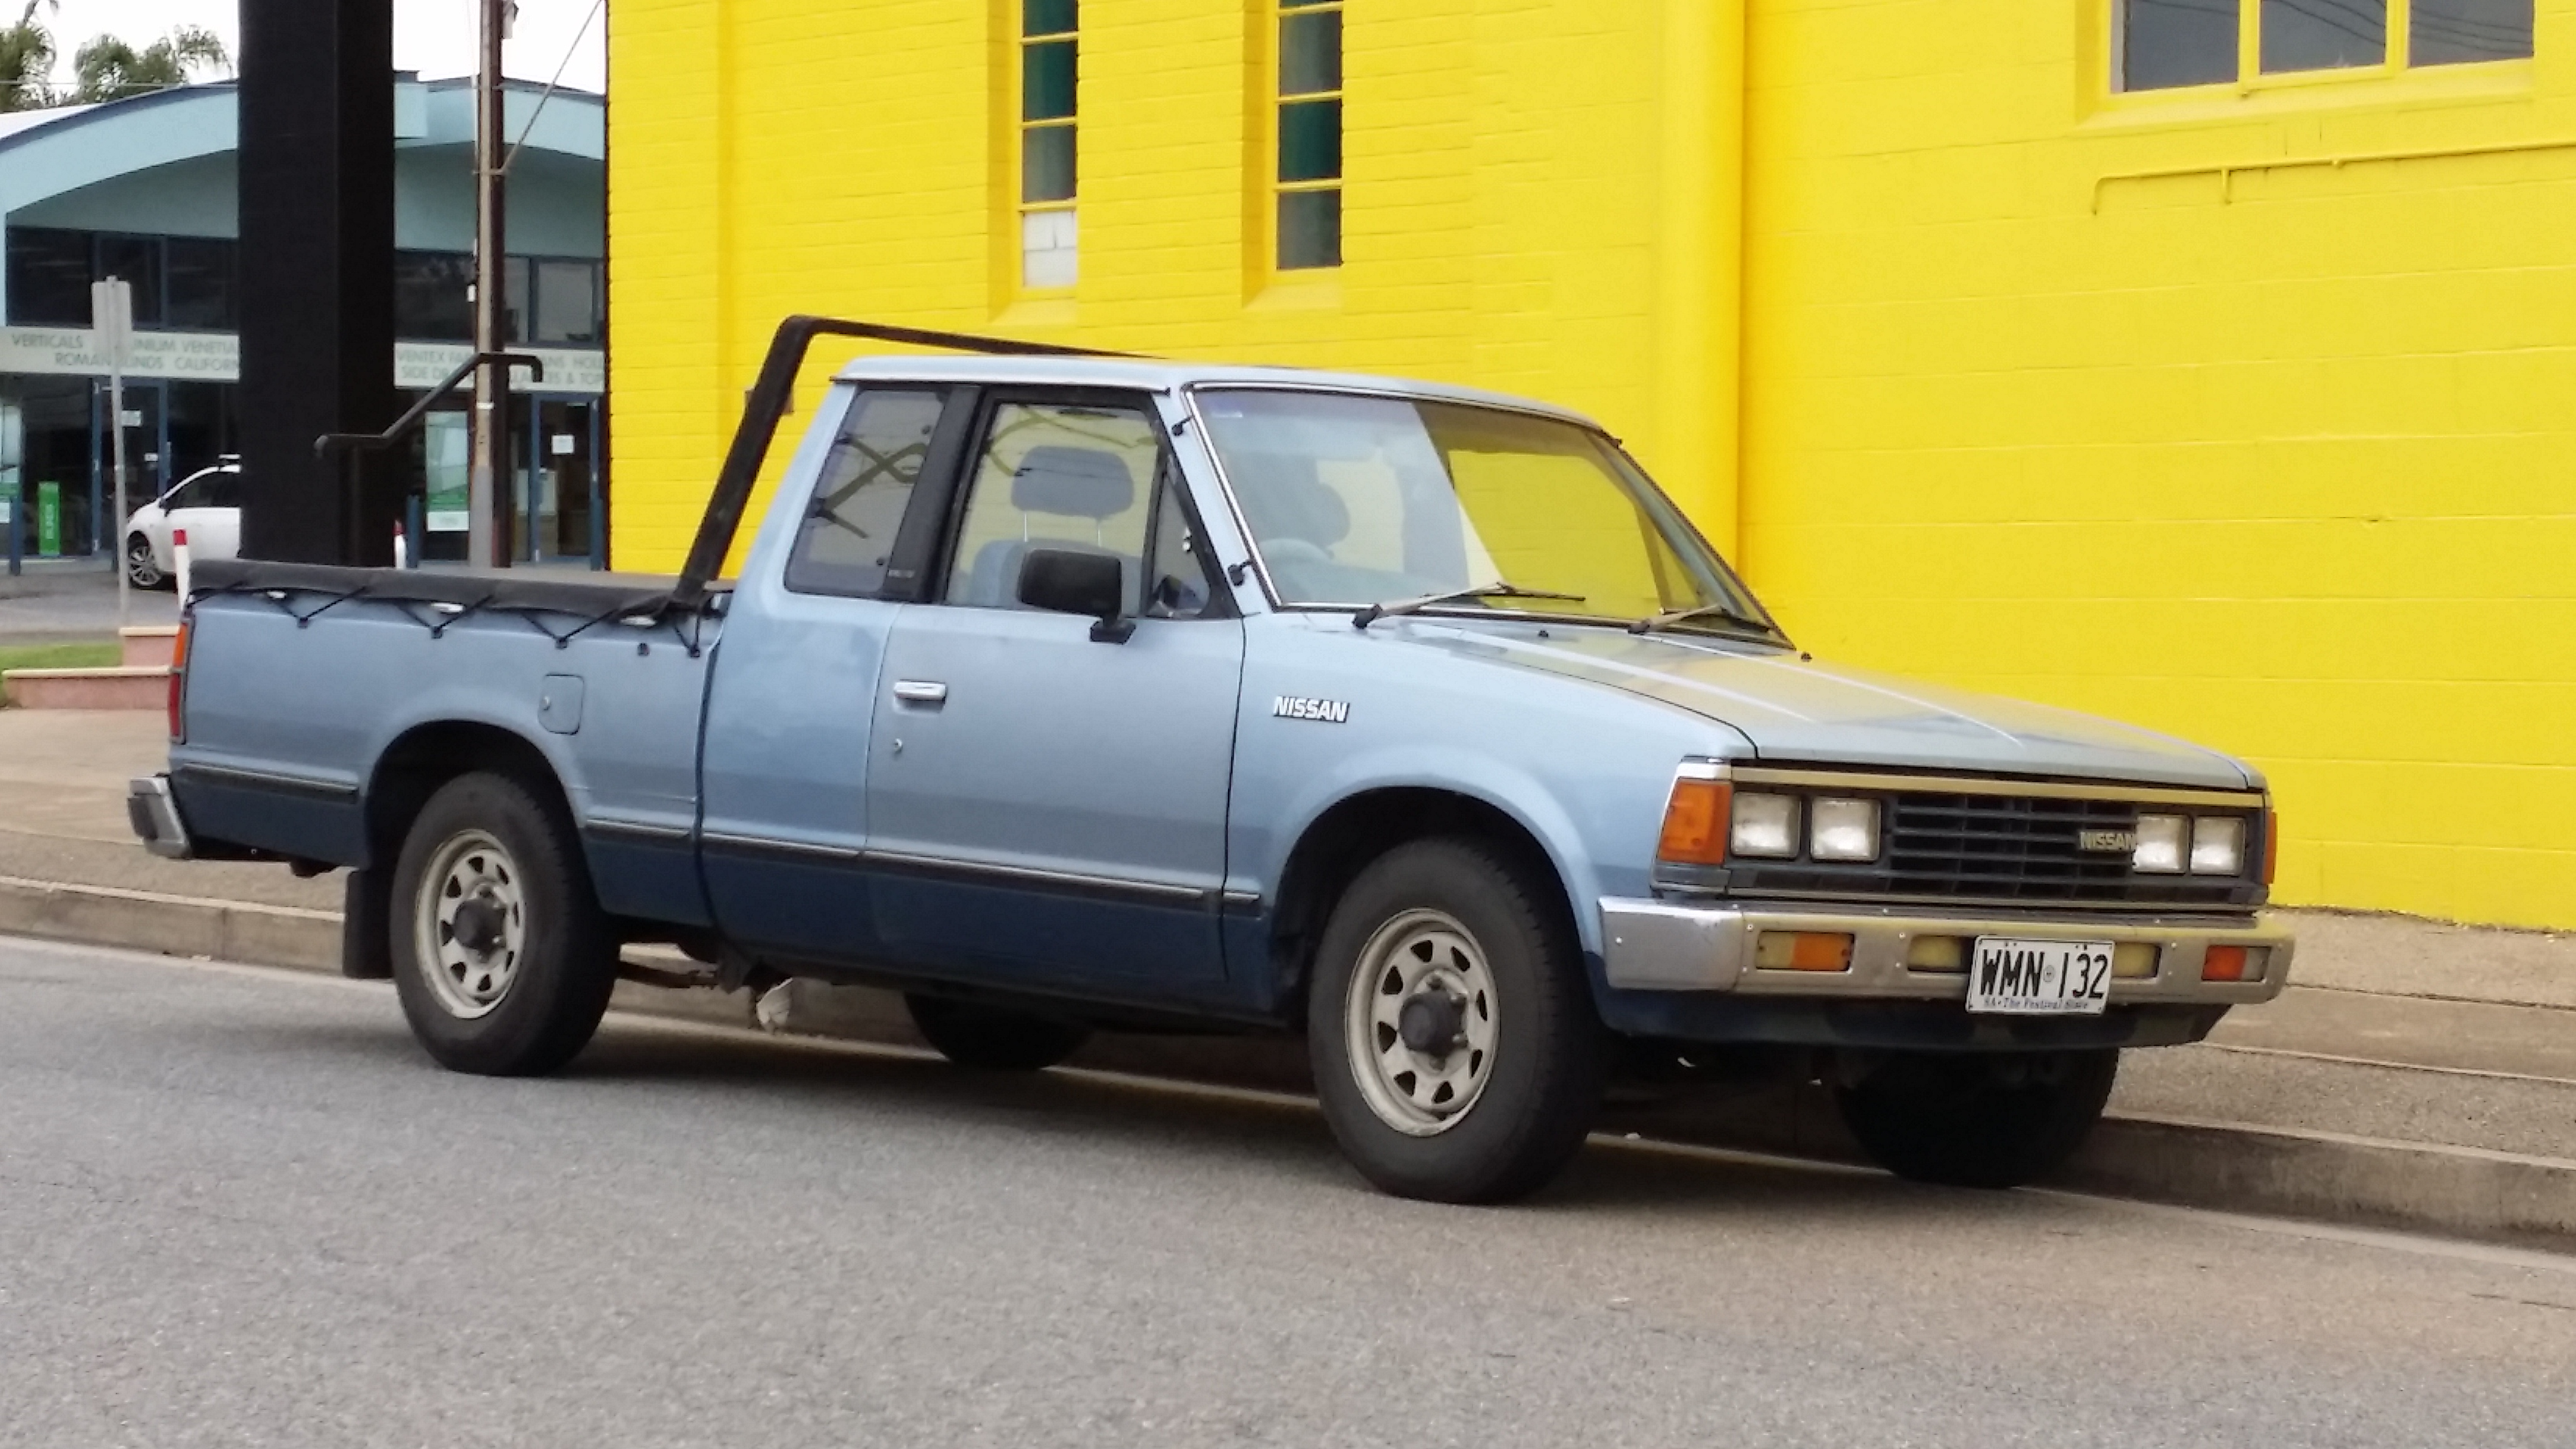 file:1984-1985 nissan 720 king cab 2-door utility (18025393232